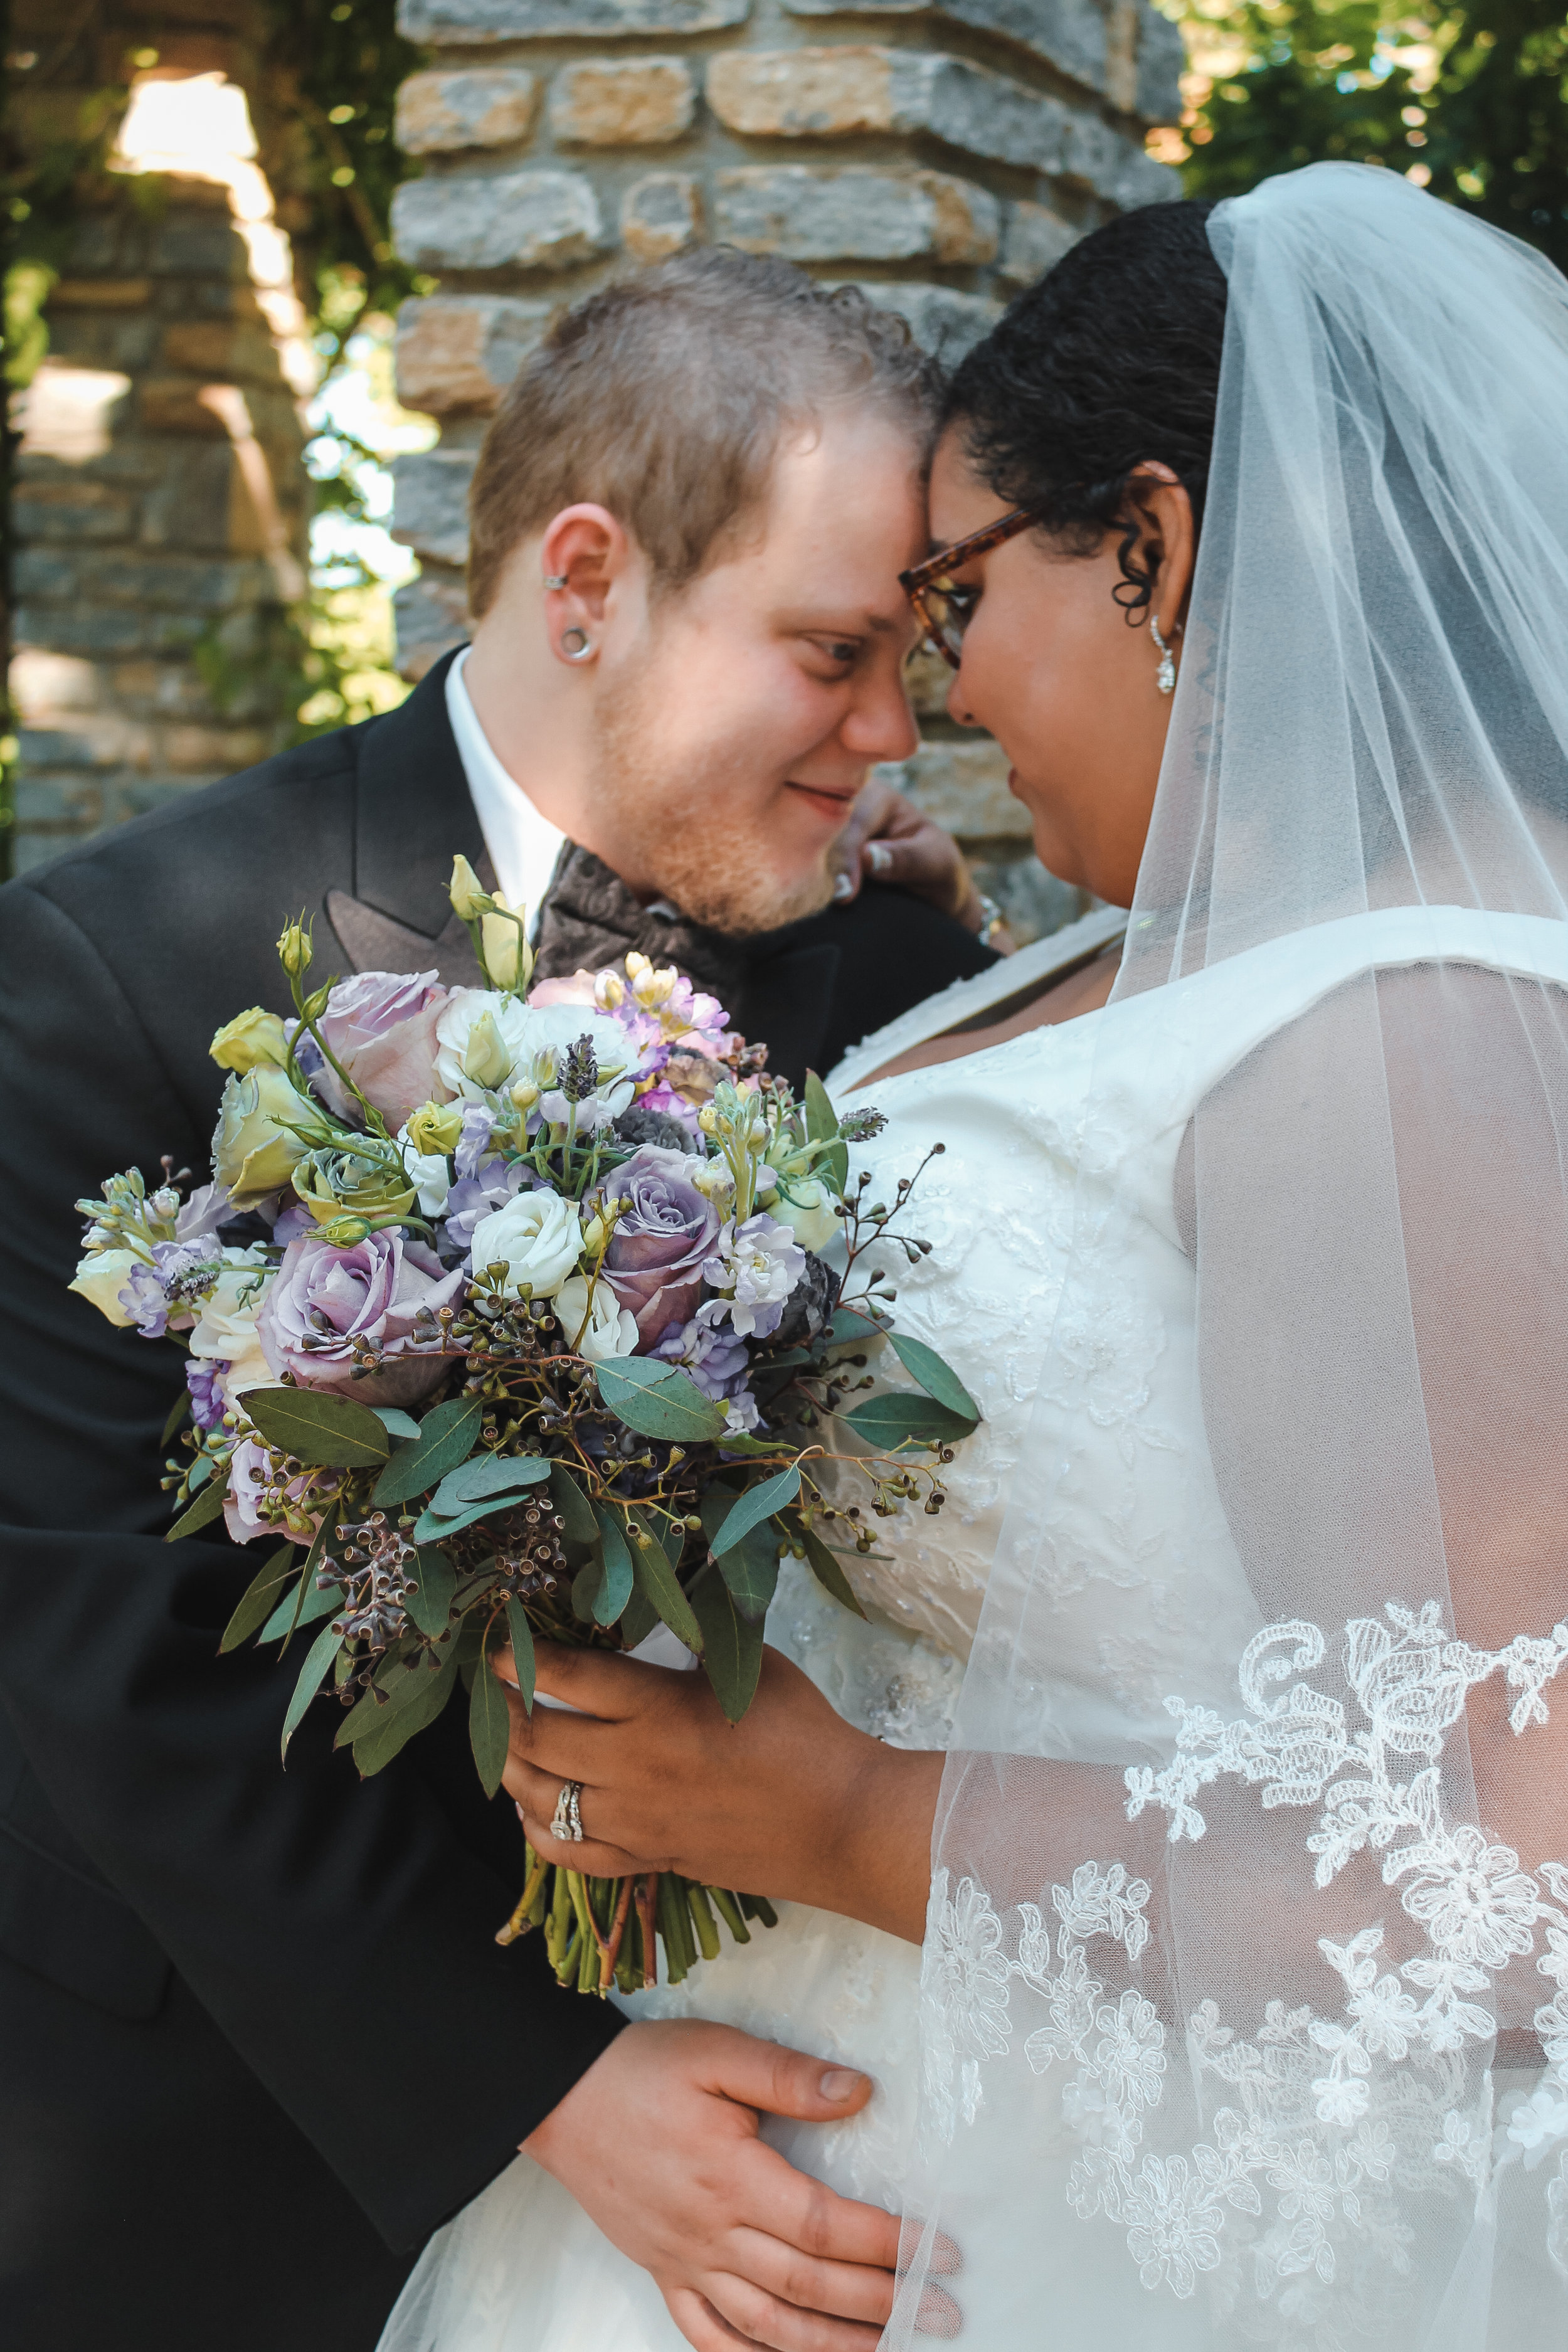 Elijah and Corrie S. happily married on June 3rd, 2018